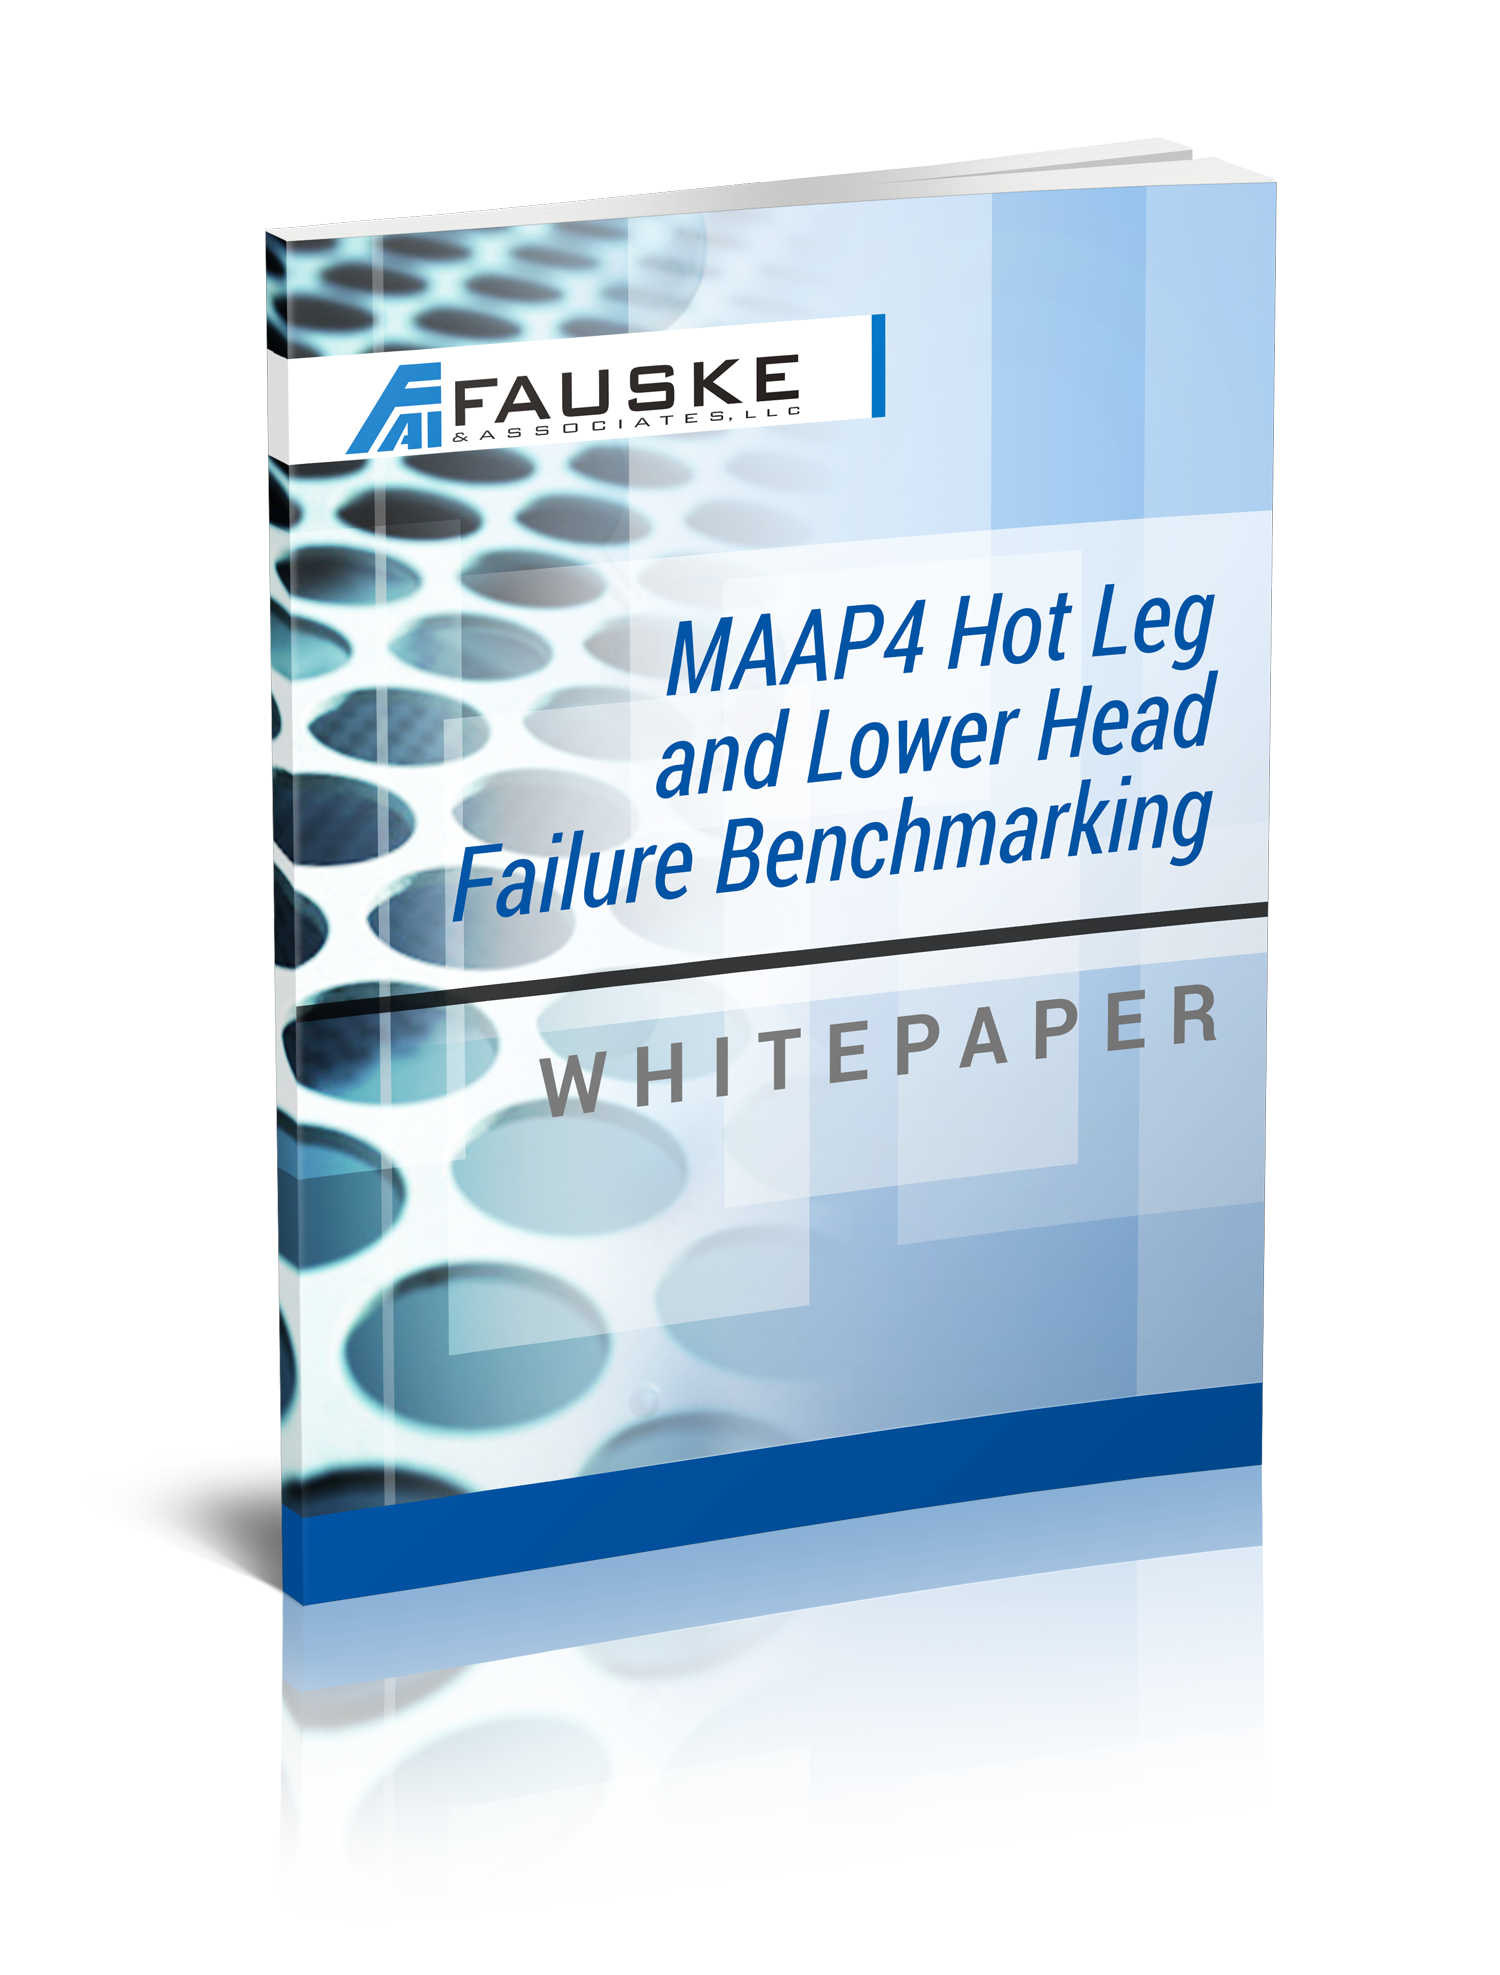 fauske-eb-cover-whitepaper-maap4.png